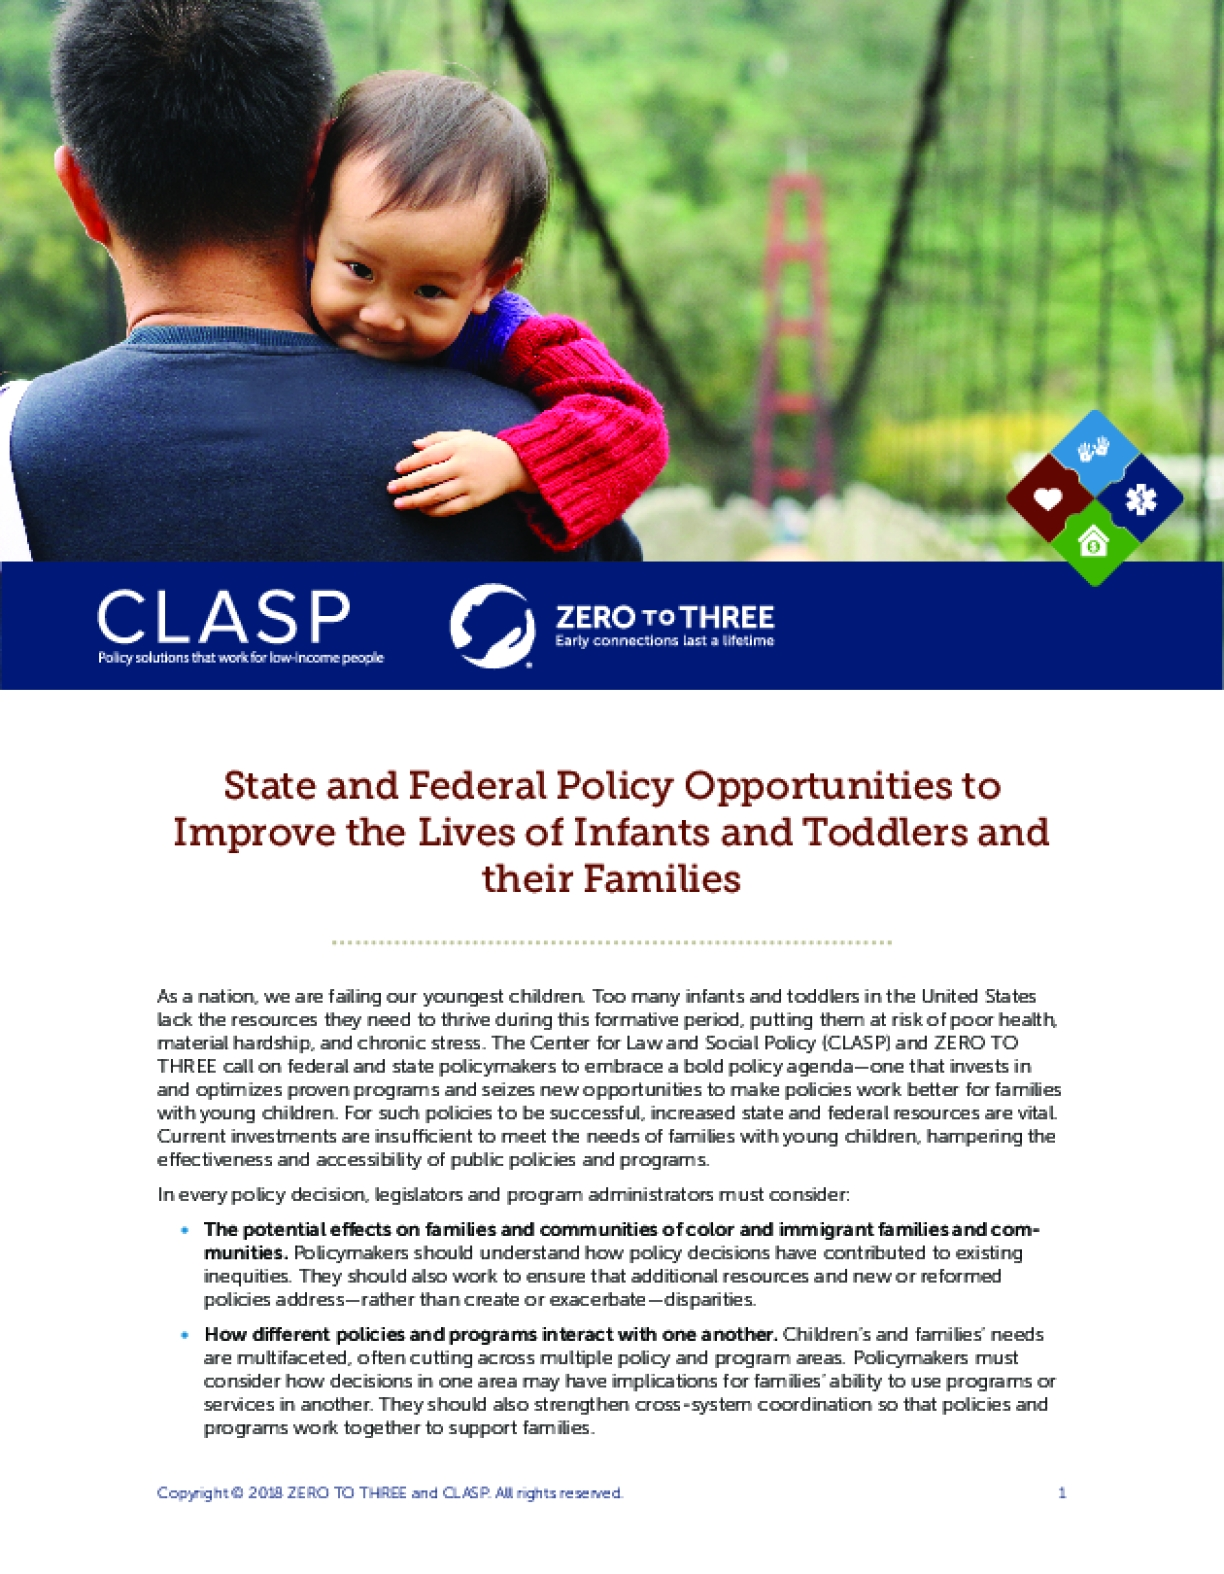 State and Federal Policy Opportunities to Improve the Lives of Infants and Toddlers and their Families